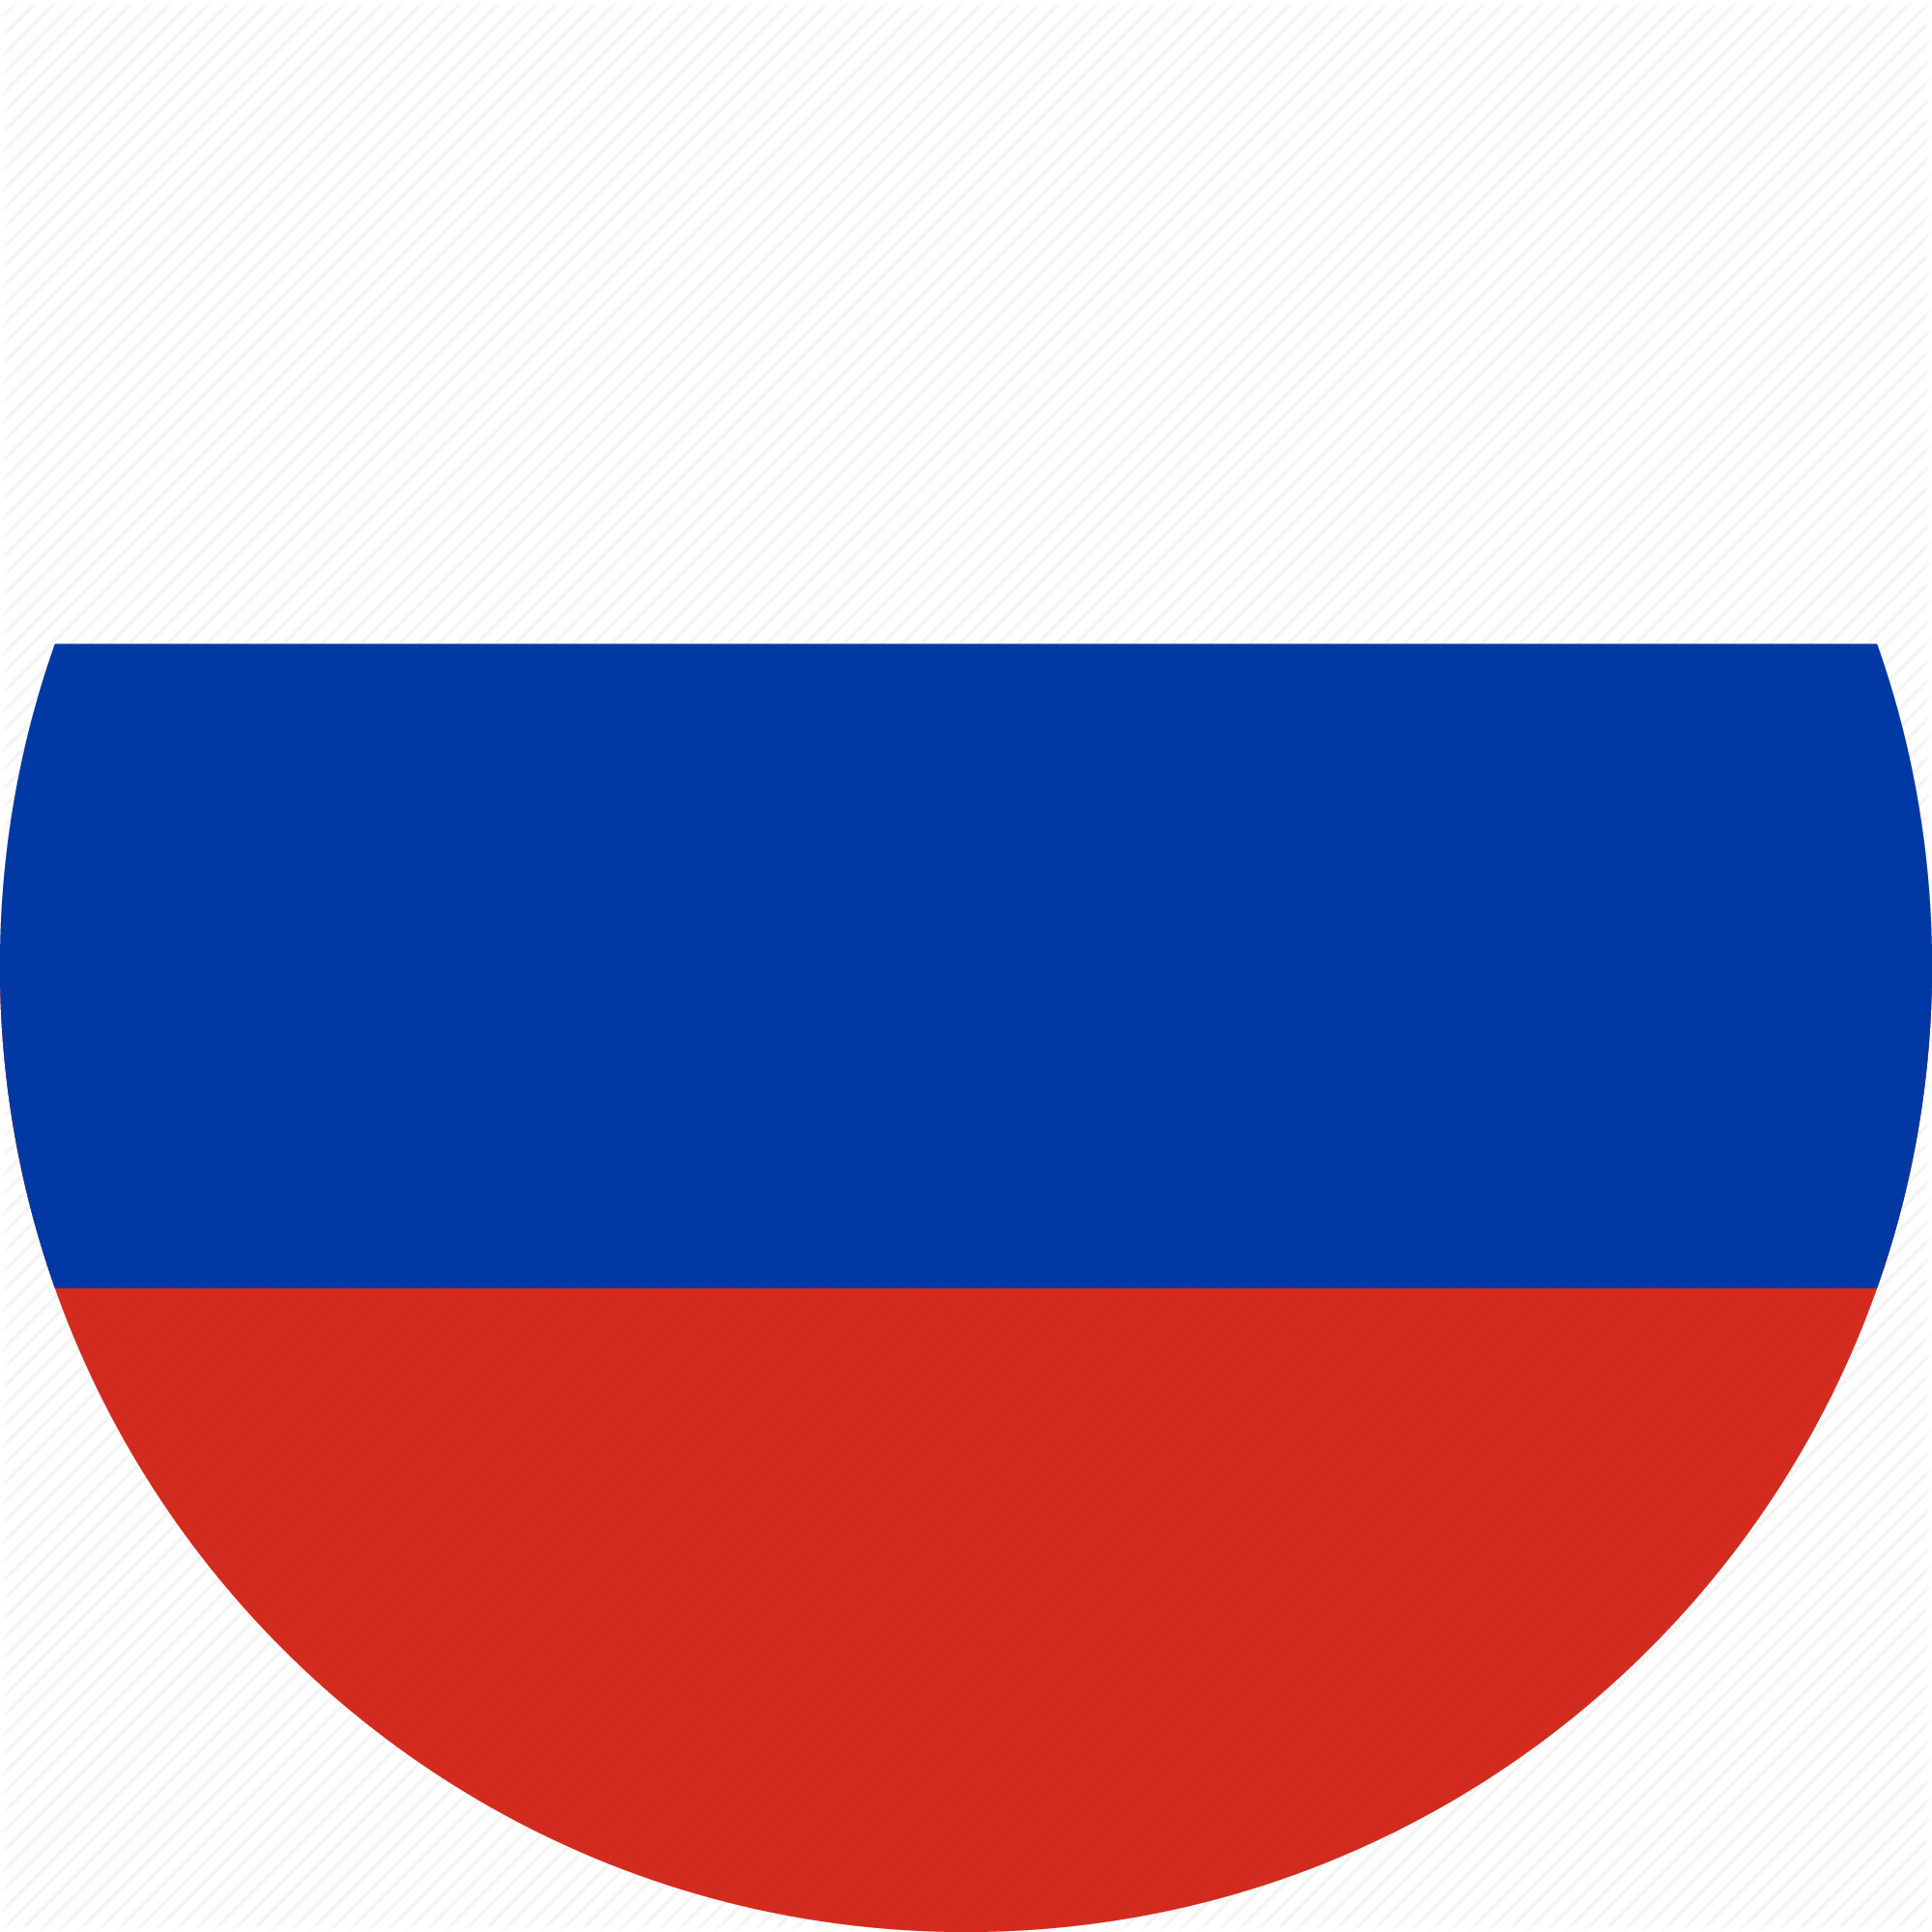 Russia PNG - 8680